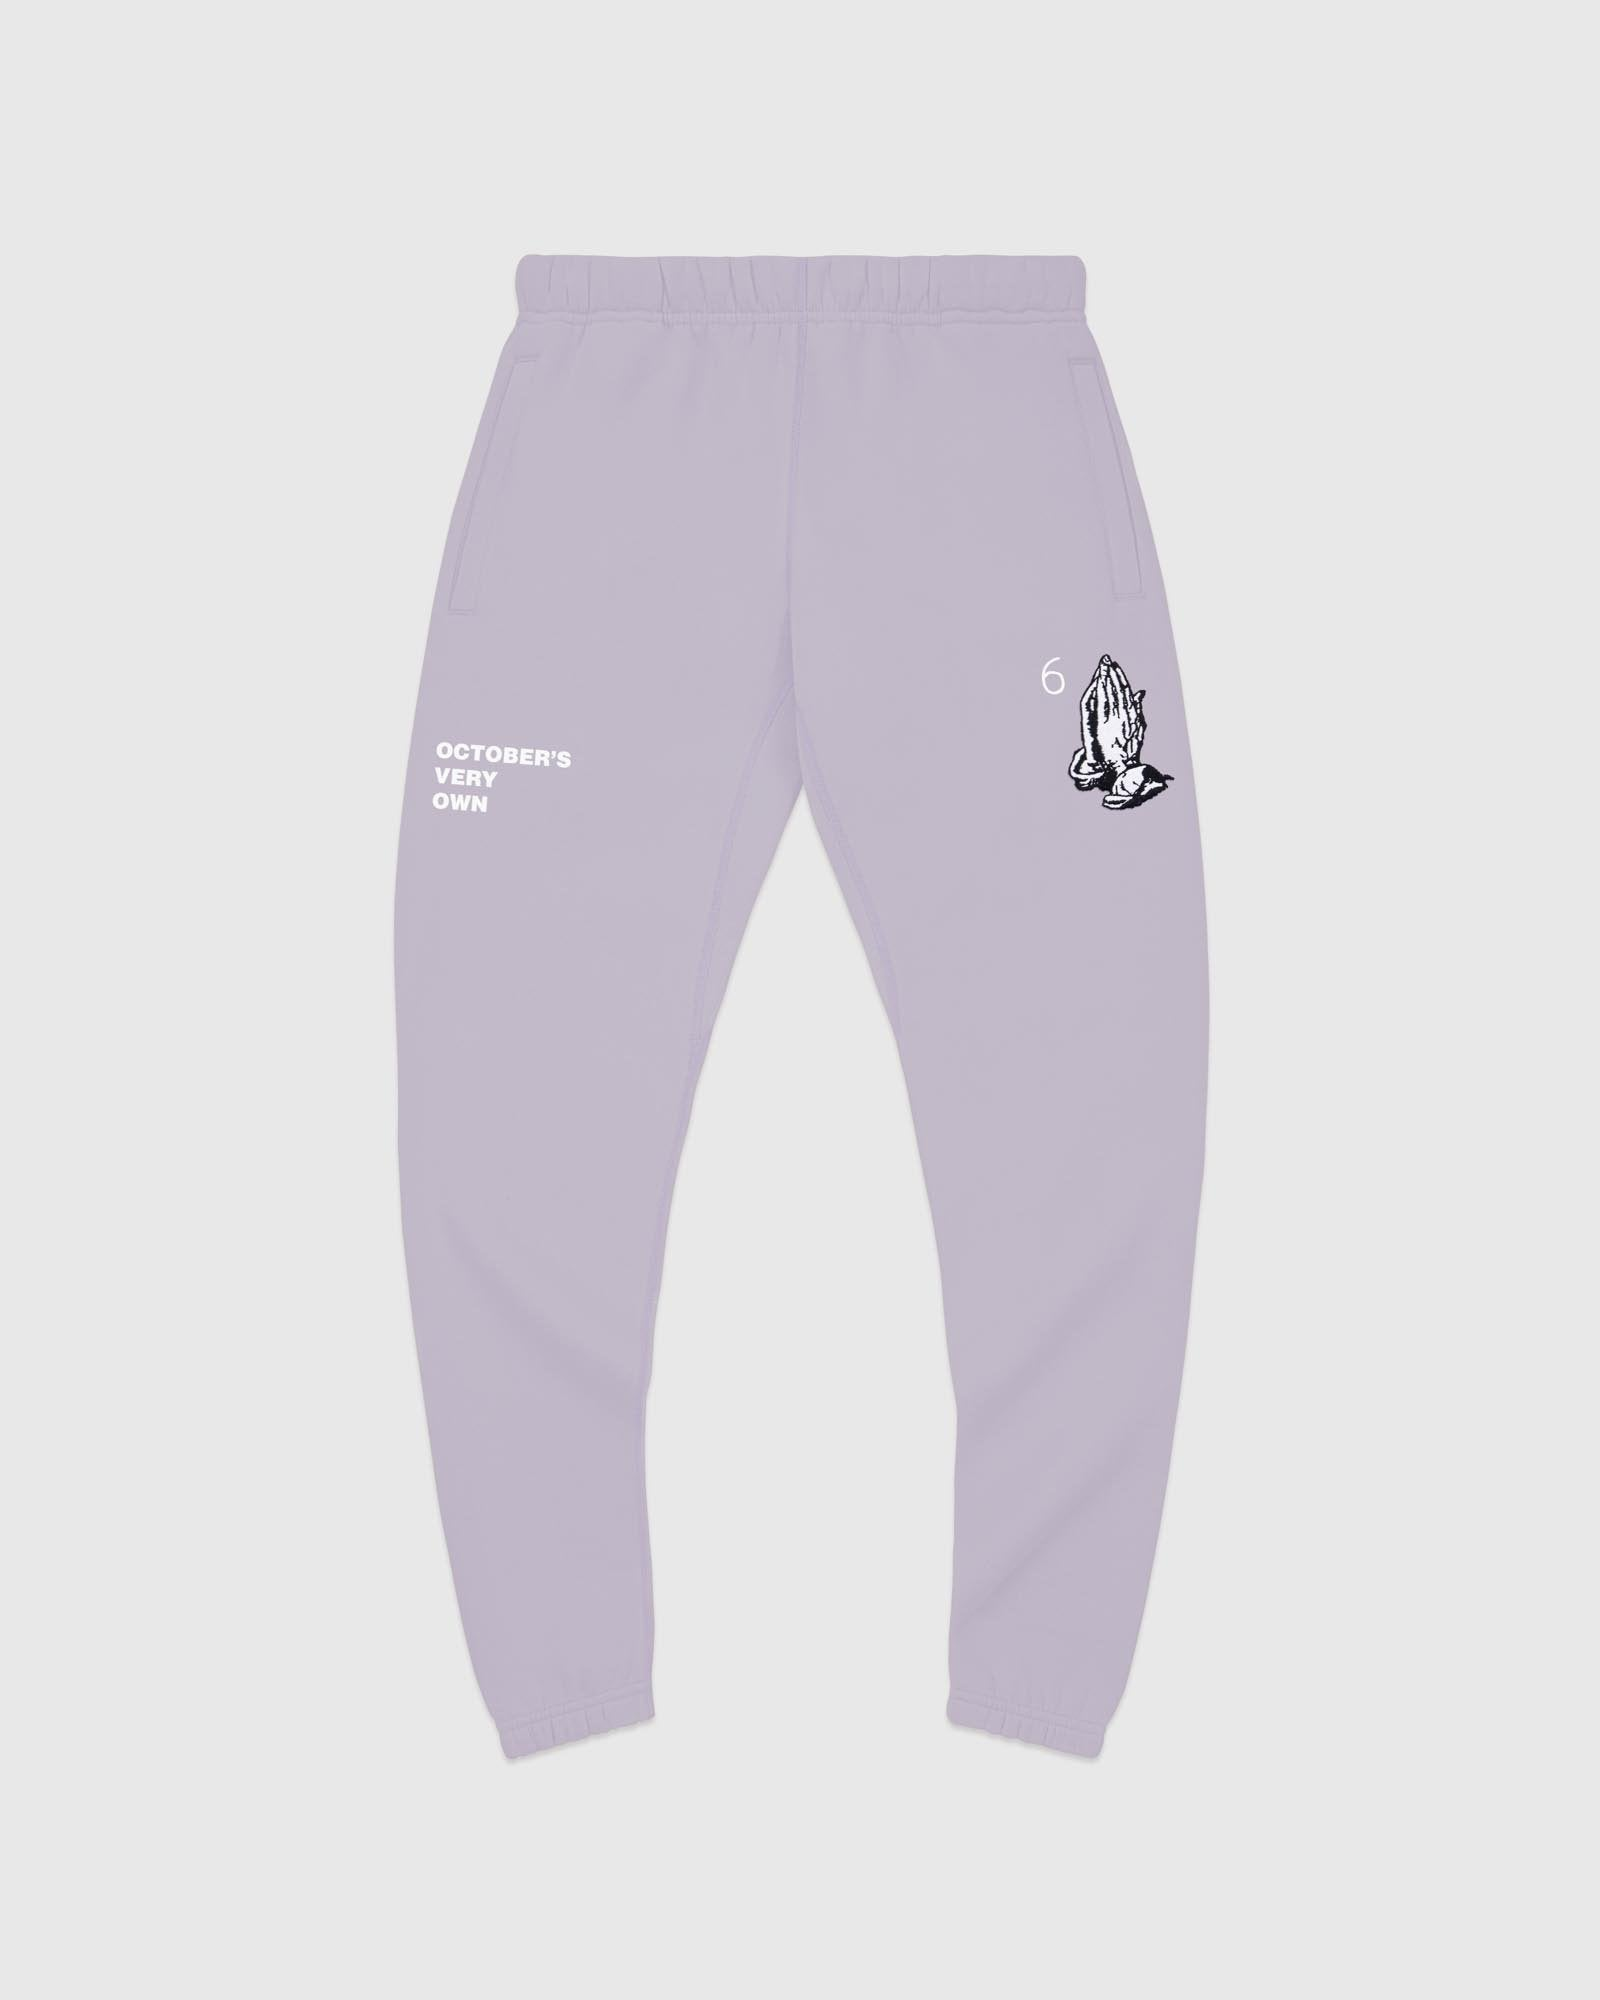 6 GOD SWEATPANT - PURPLE LIGHT IMAGE #1